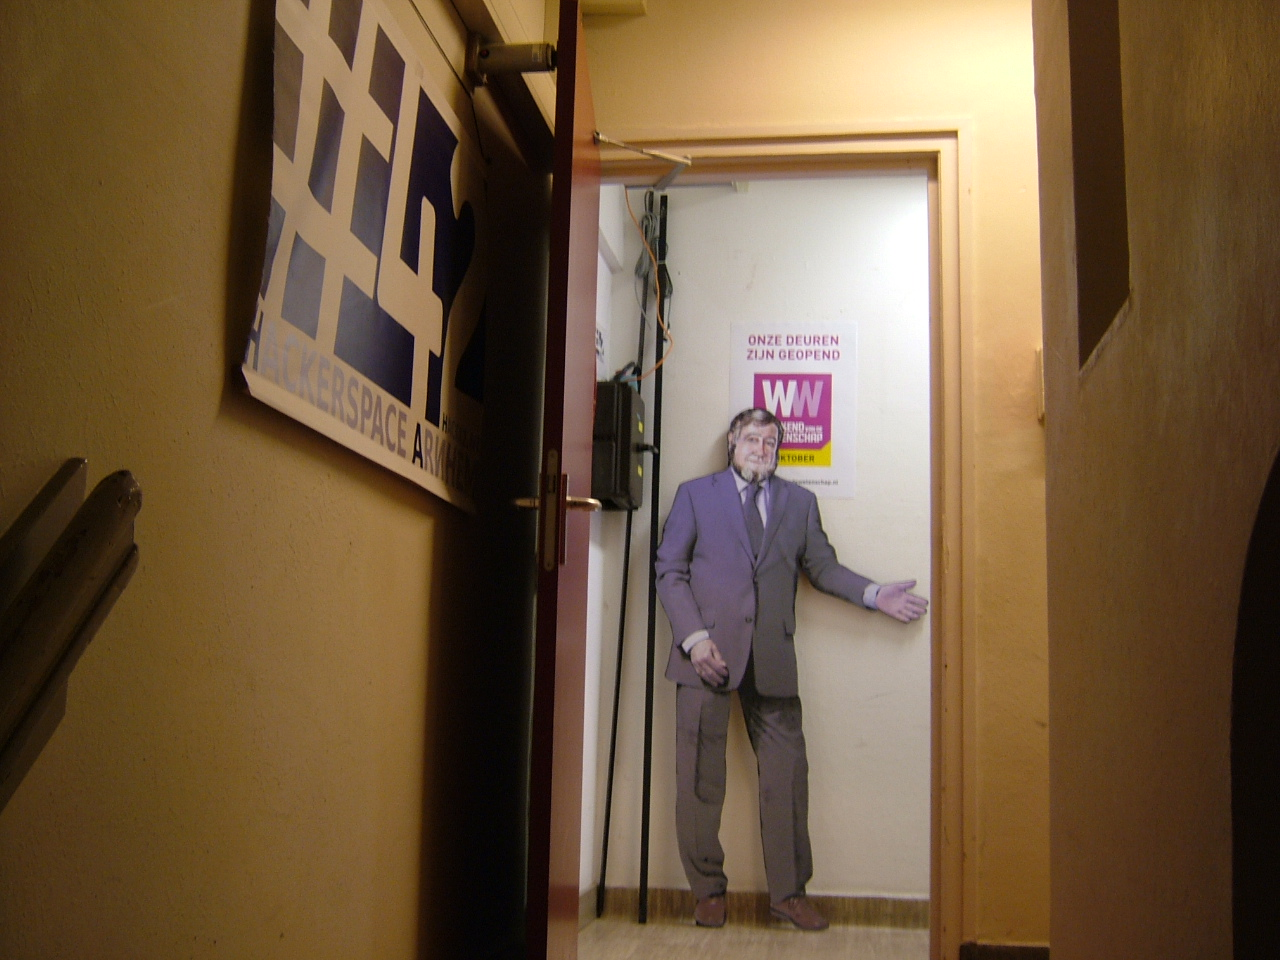 Cutout of bearded man standing in a doorway